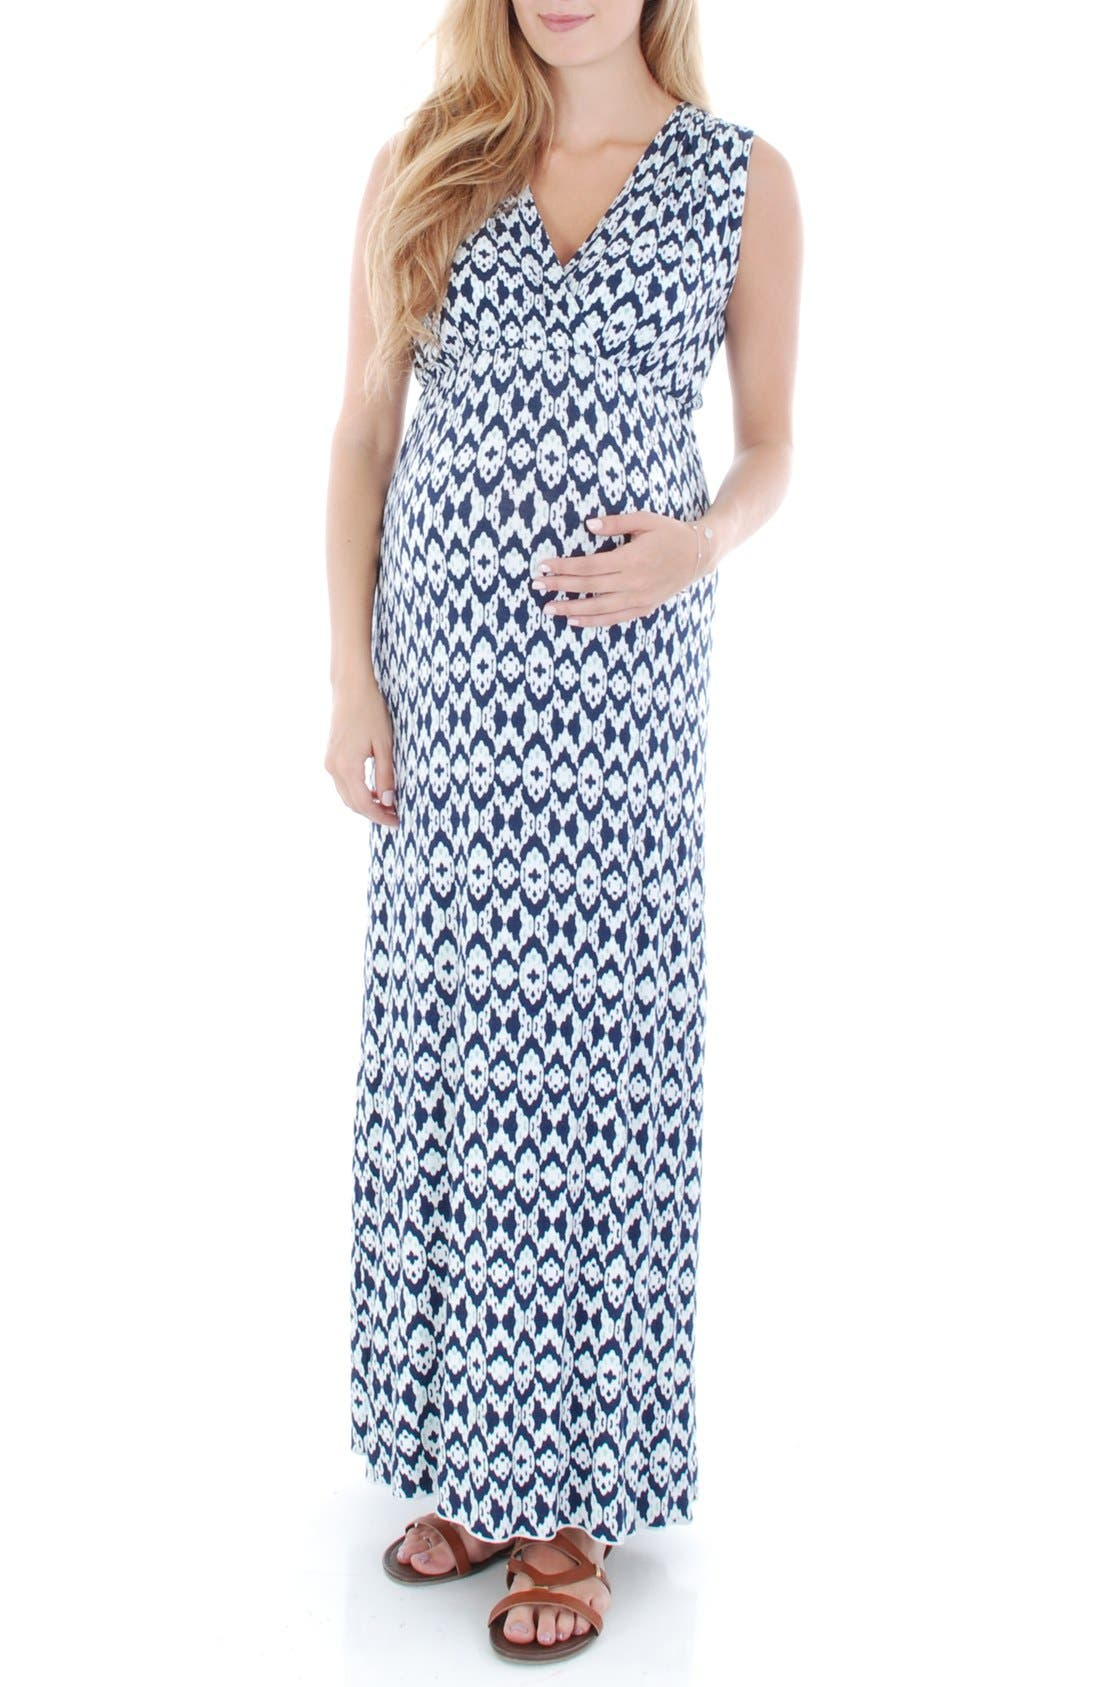 EVERLY GREY 'Jill' Maternity Maxi Dress